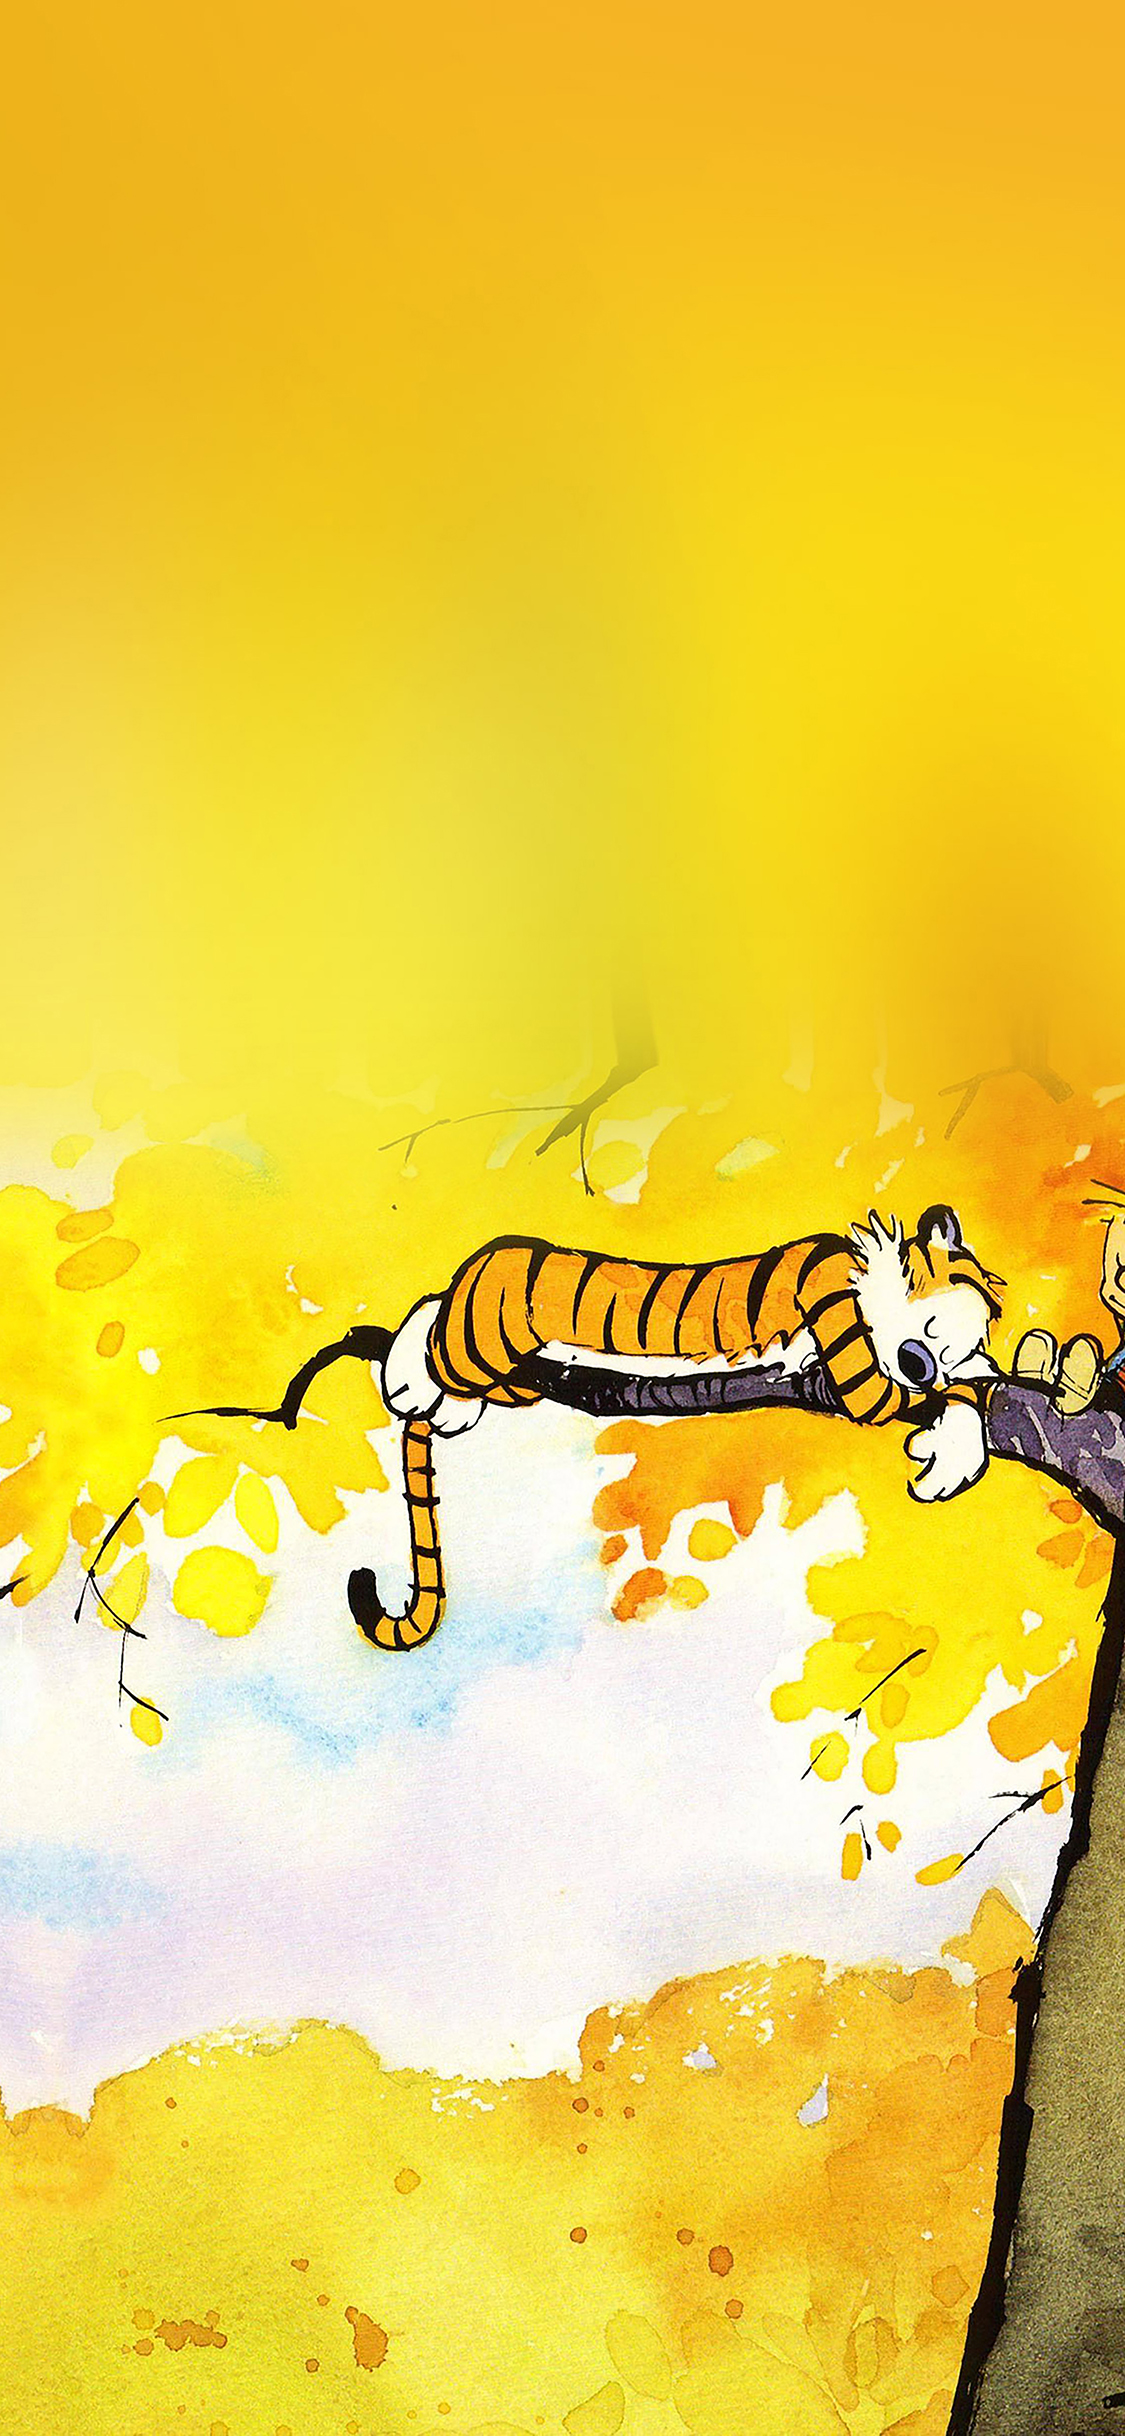 Iphonepapers Ab20 Wallpaper Calvin And Hobbes Nap Illust